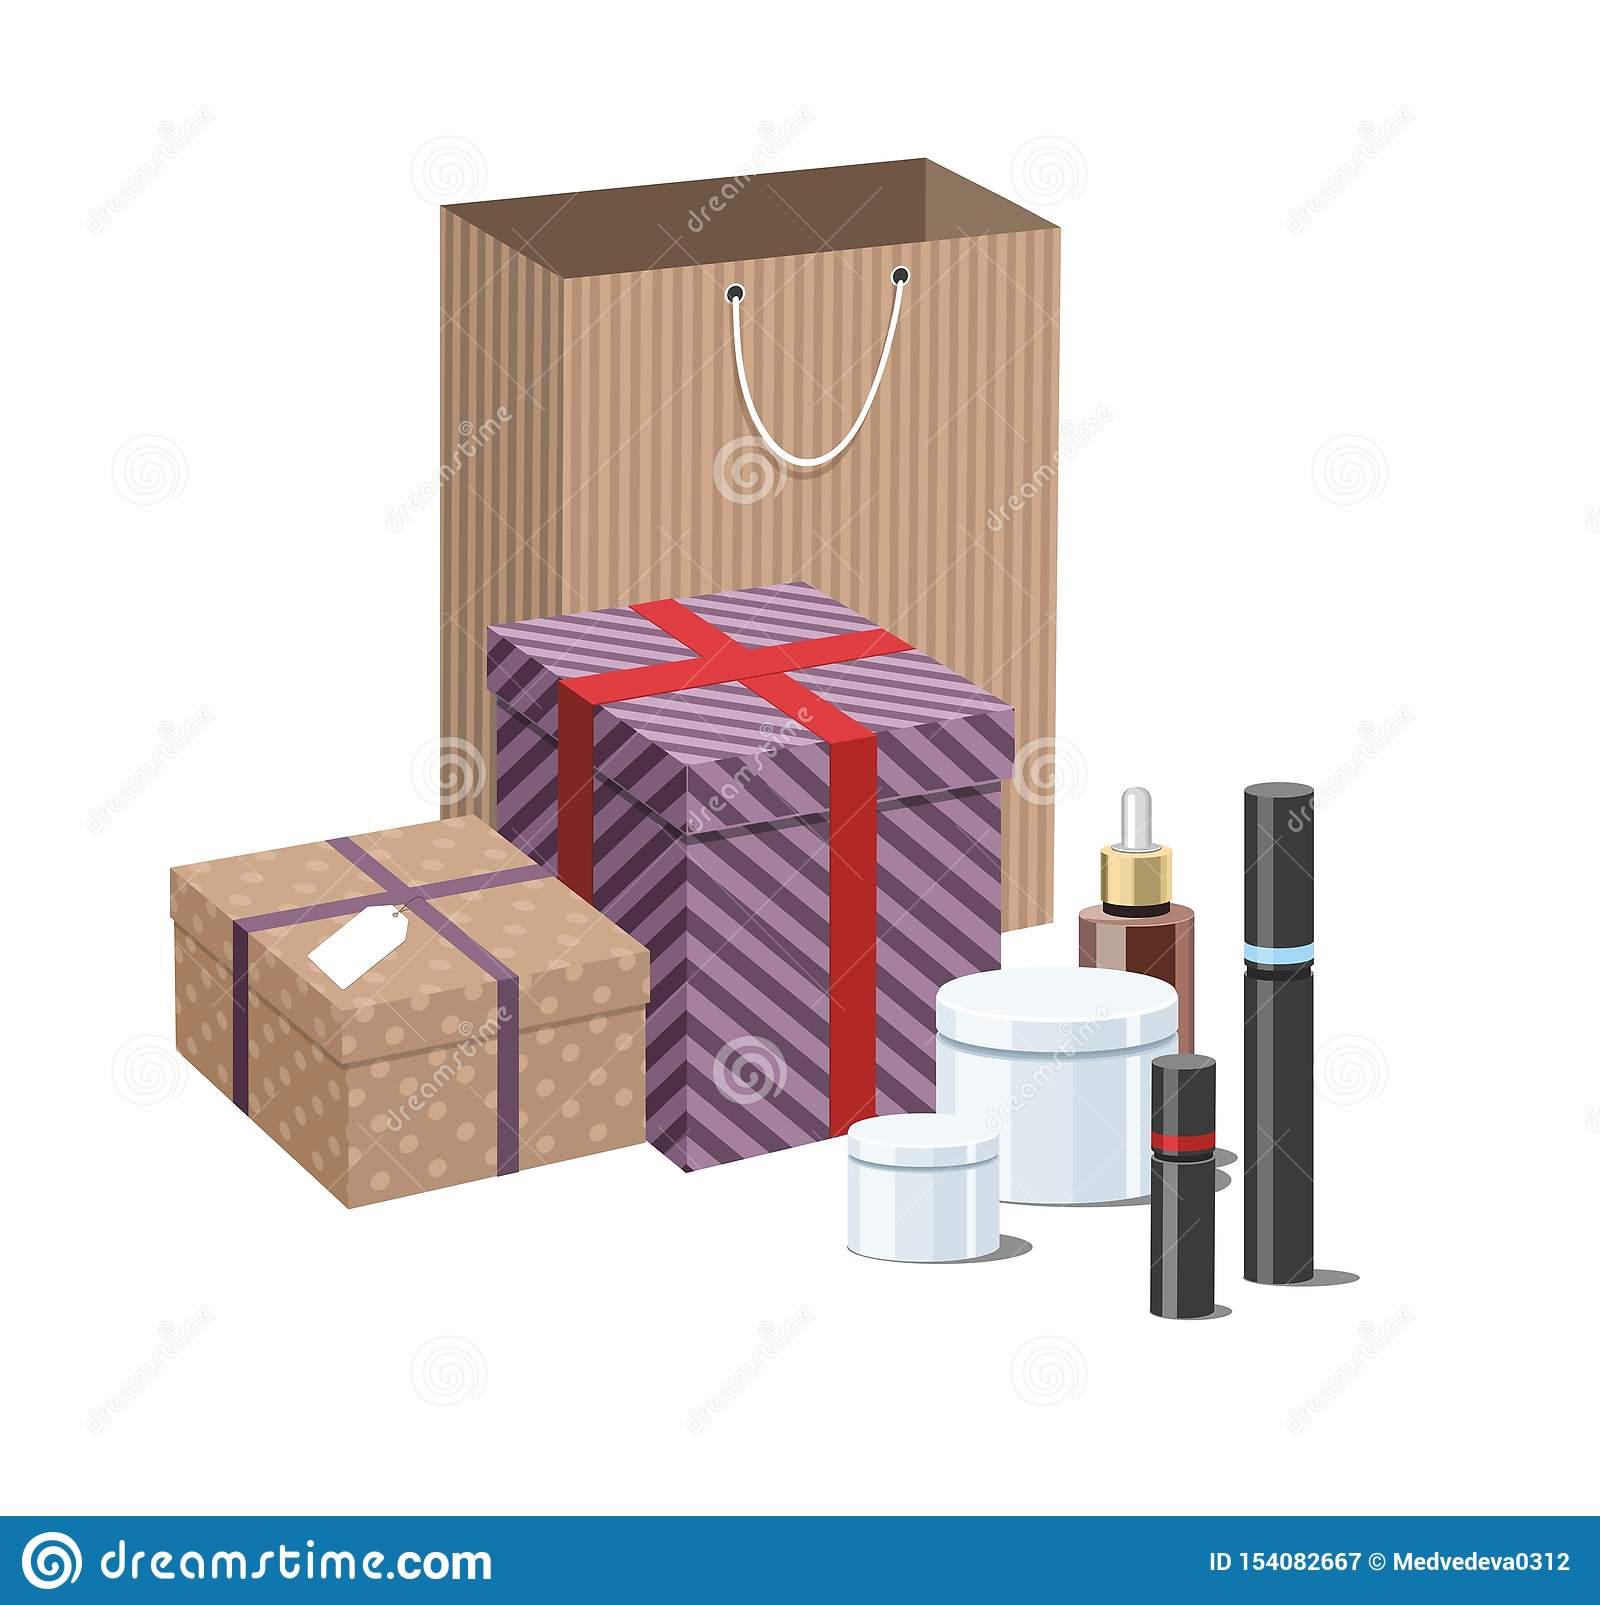 Make Up products and Skincare Packaging with craft wrapped gift boxes. 3D